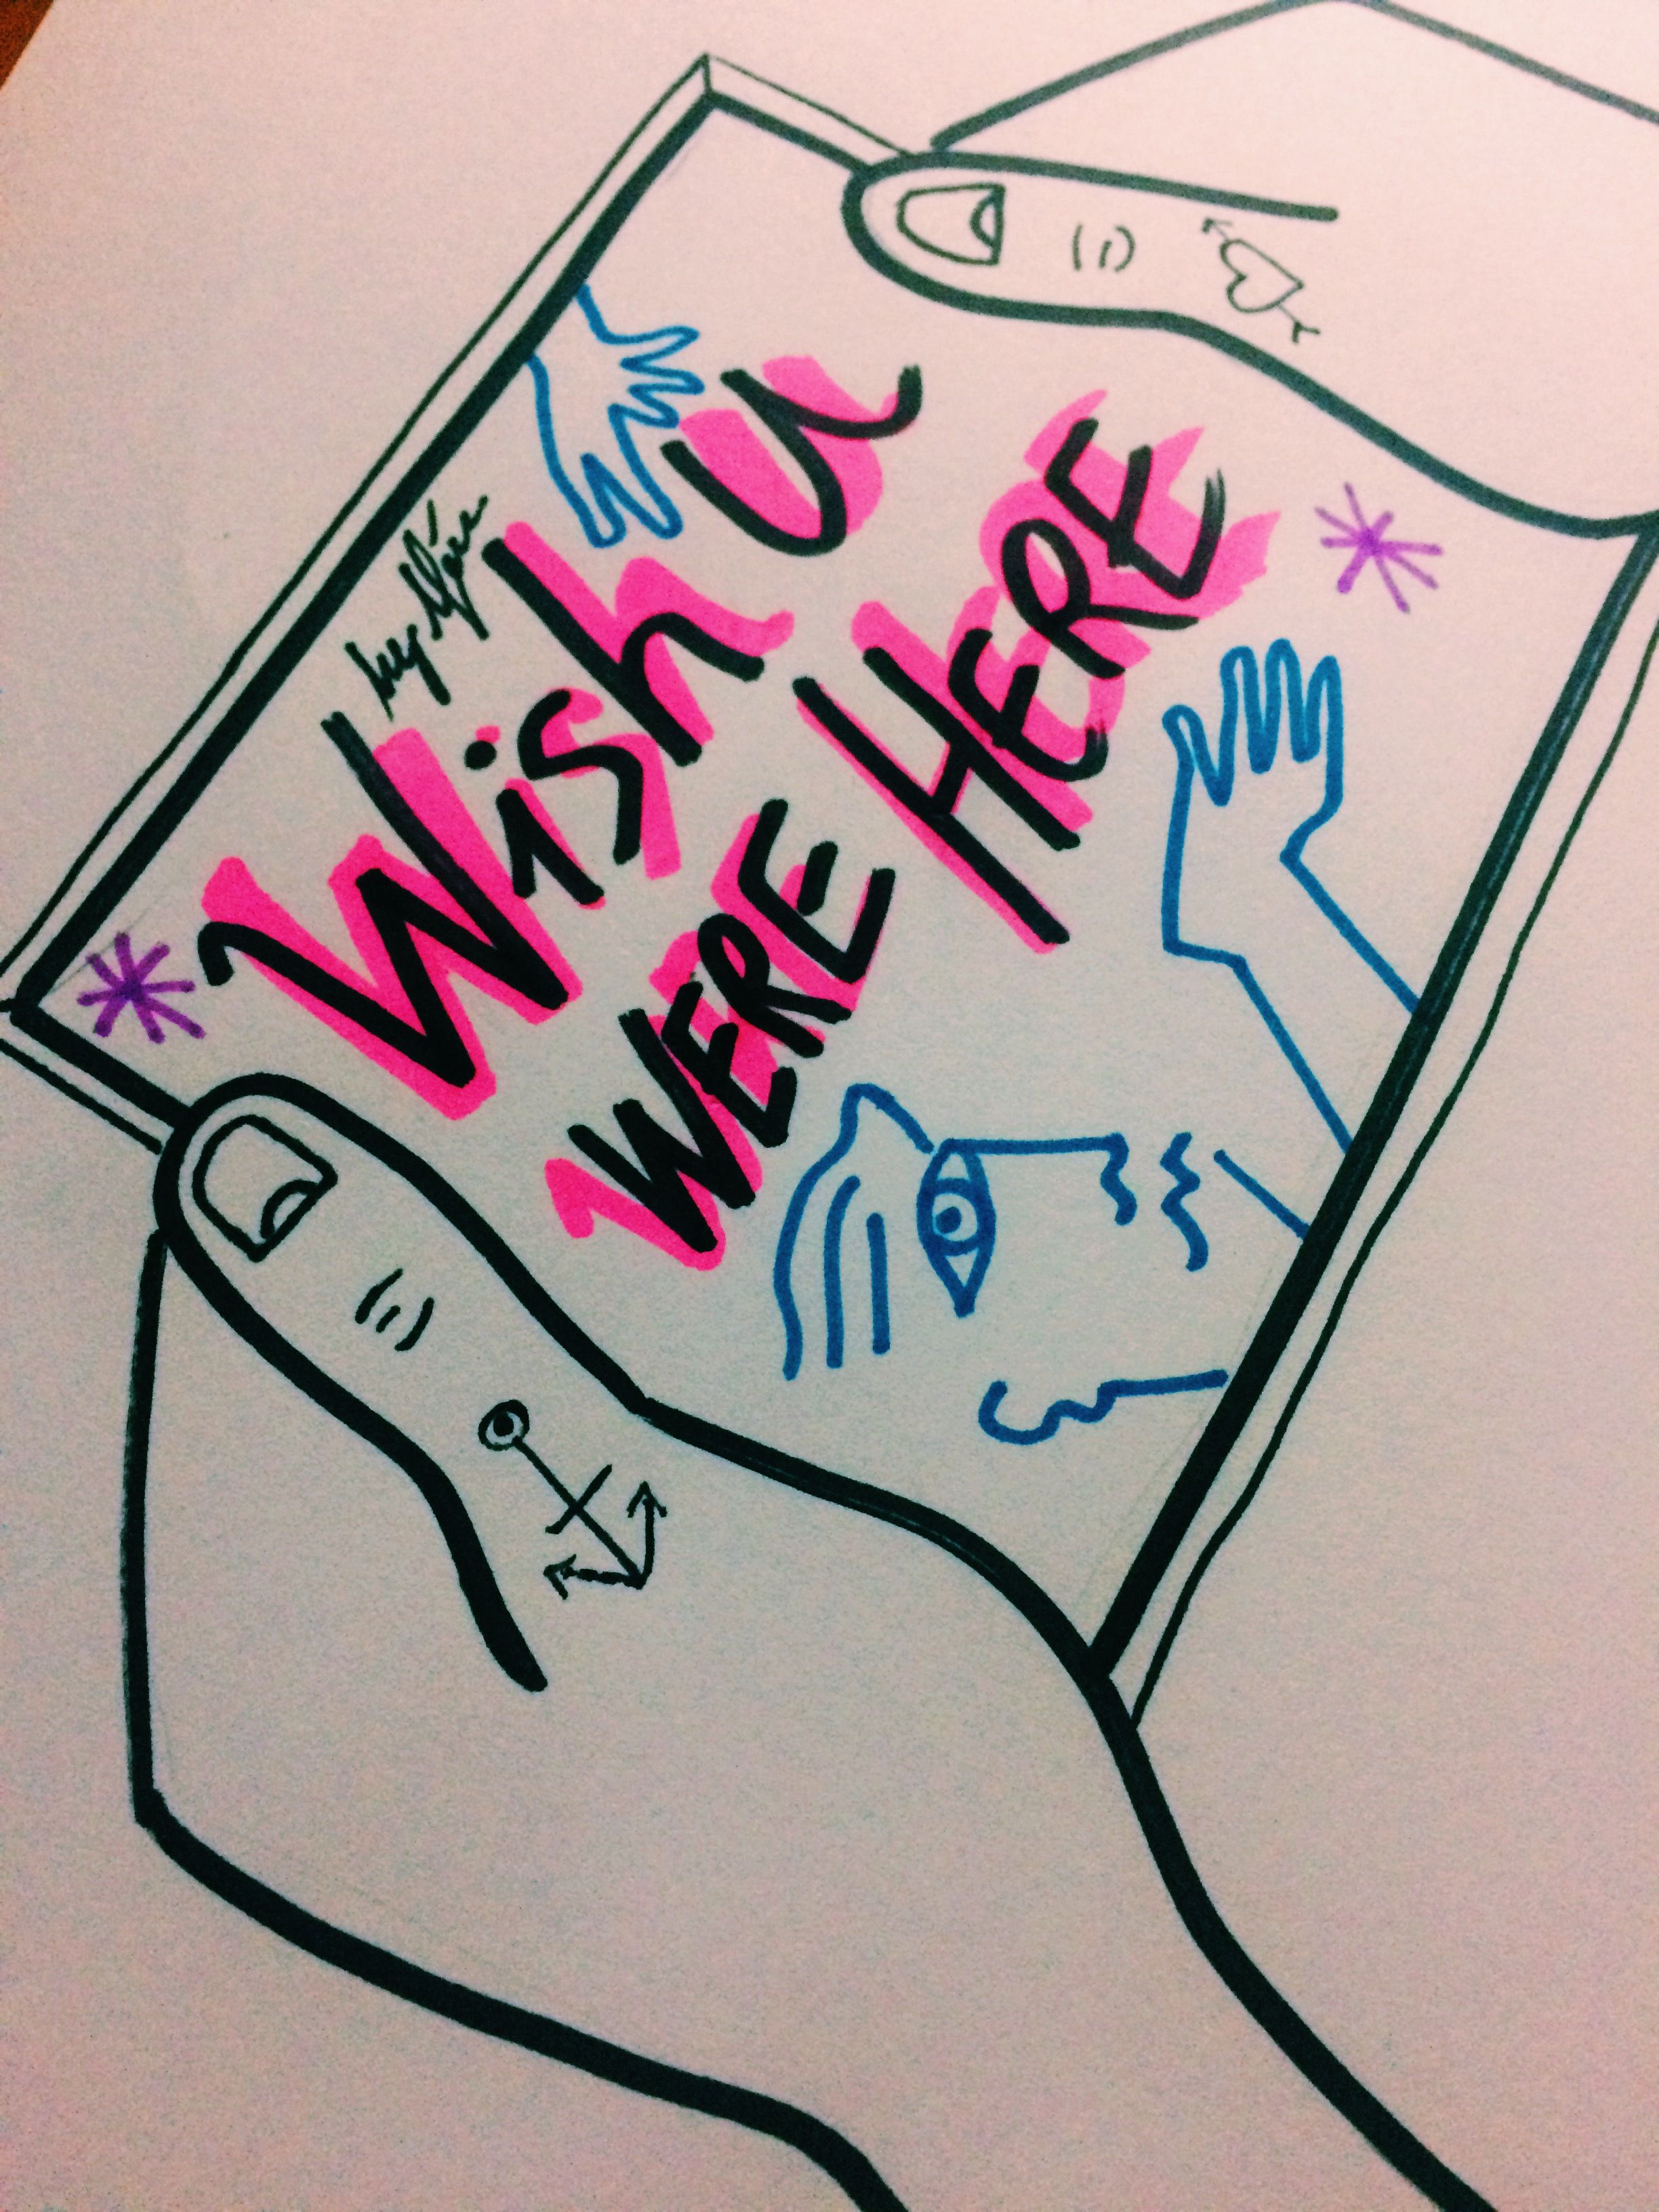 Wish You Were Here Quotes Wish You Were Here 💌 Pinterest Pinit Art Arte Artist